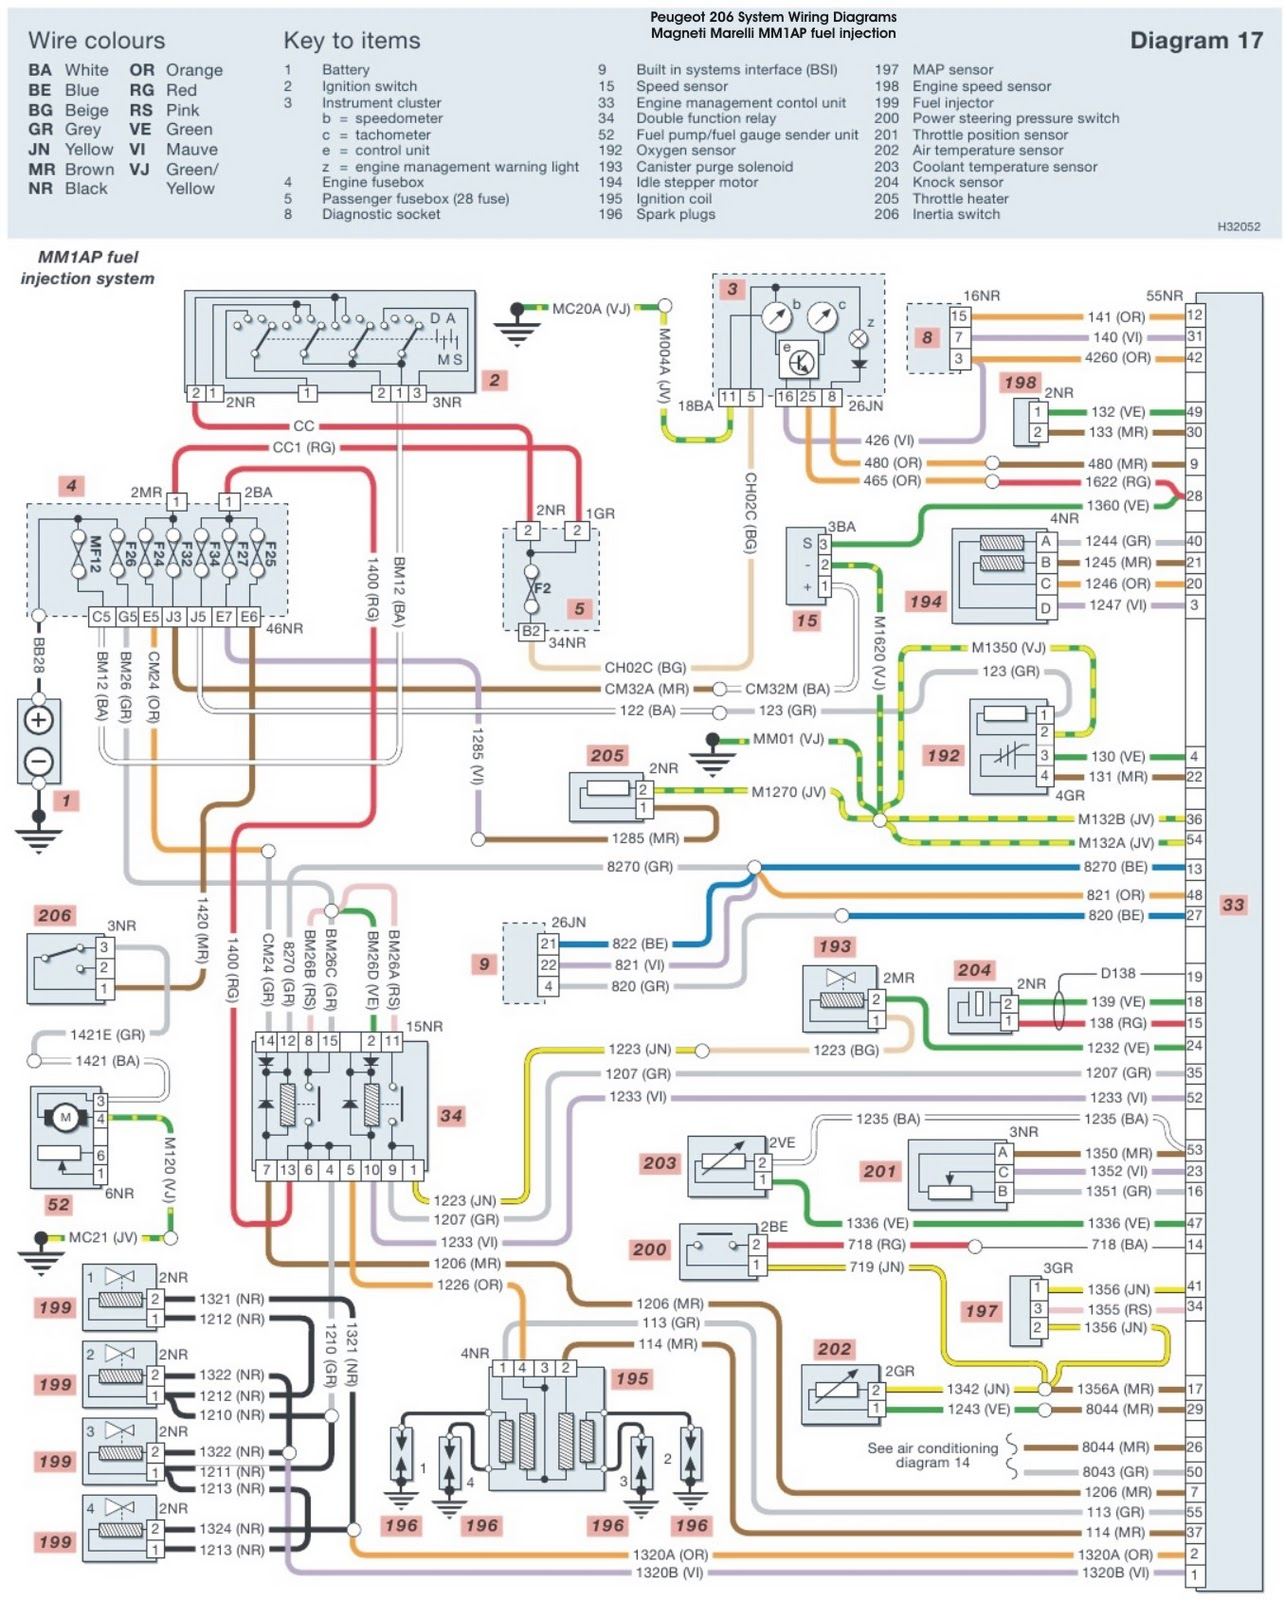 peugeot 206 alternator wiring diagram peugeot 206 headlight wiring diagram